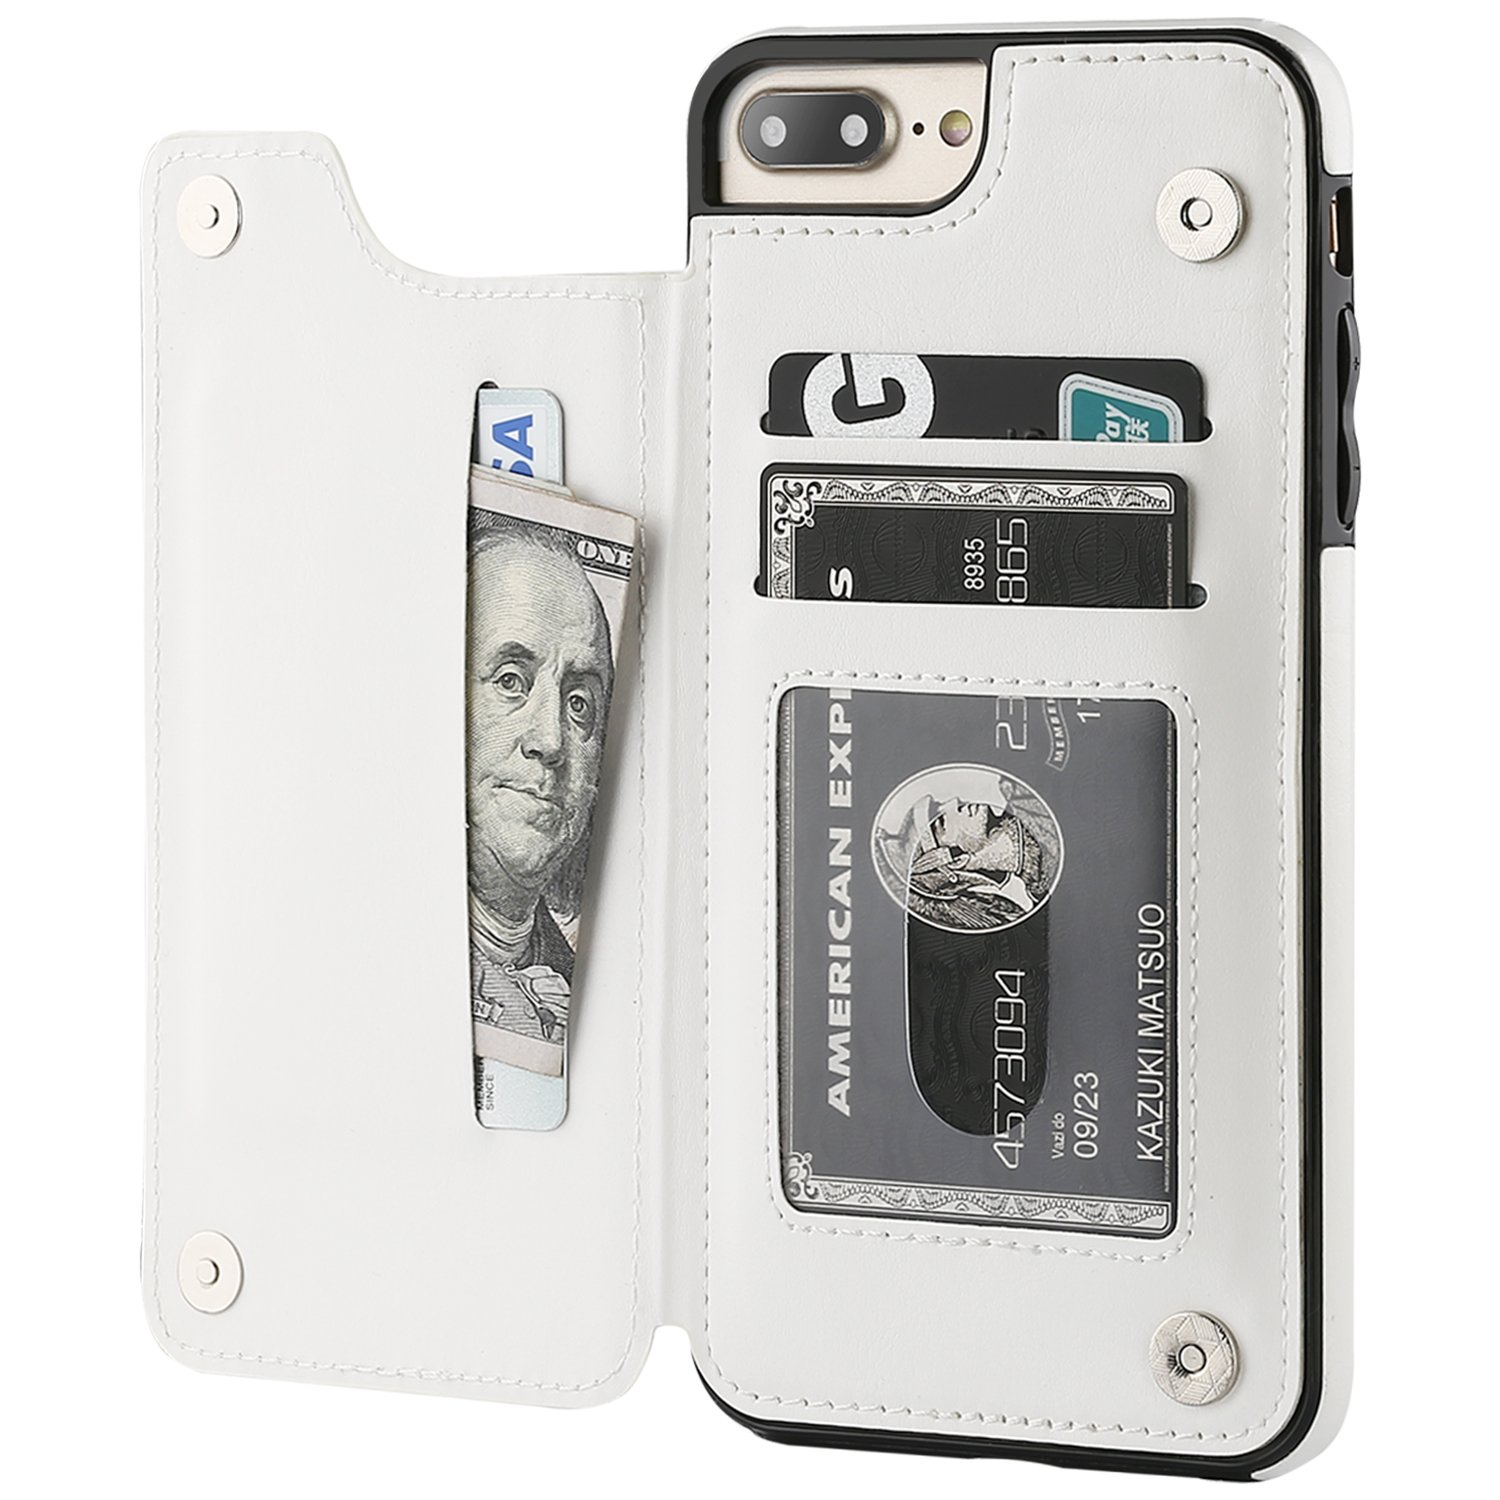 Black iPhone 11 Pro Max Wallet Case with Card Holder,OT ONETOP PU Leather Kickstand Card Slots Case,Double Magnetic Clasp and Durable Shockproof Cover for iPhone 11 Pro Max 6.5 Inch